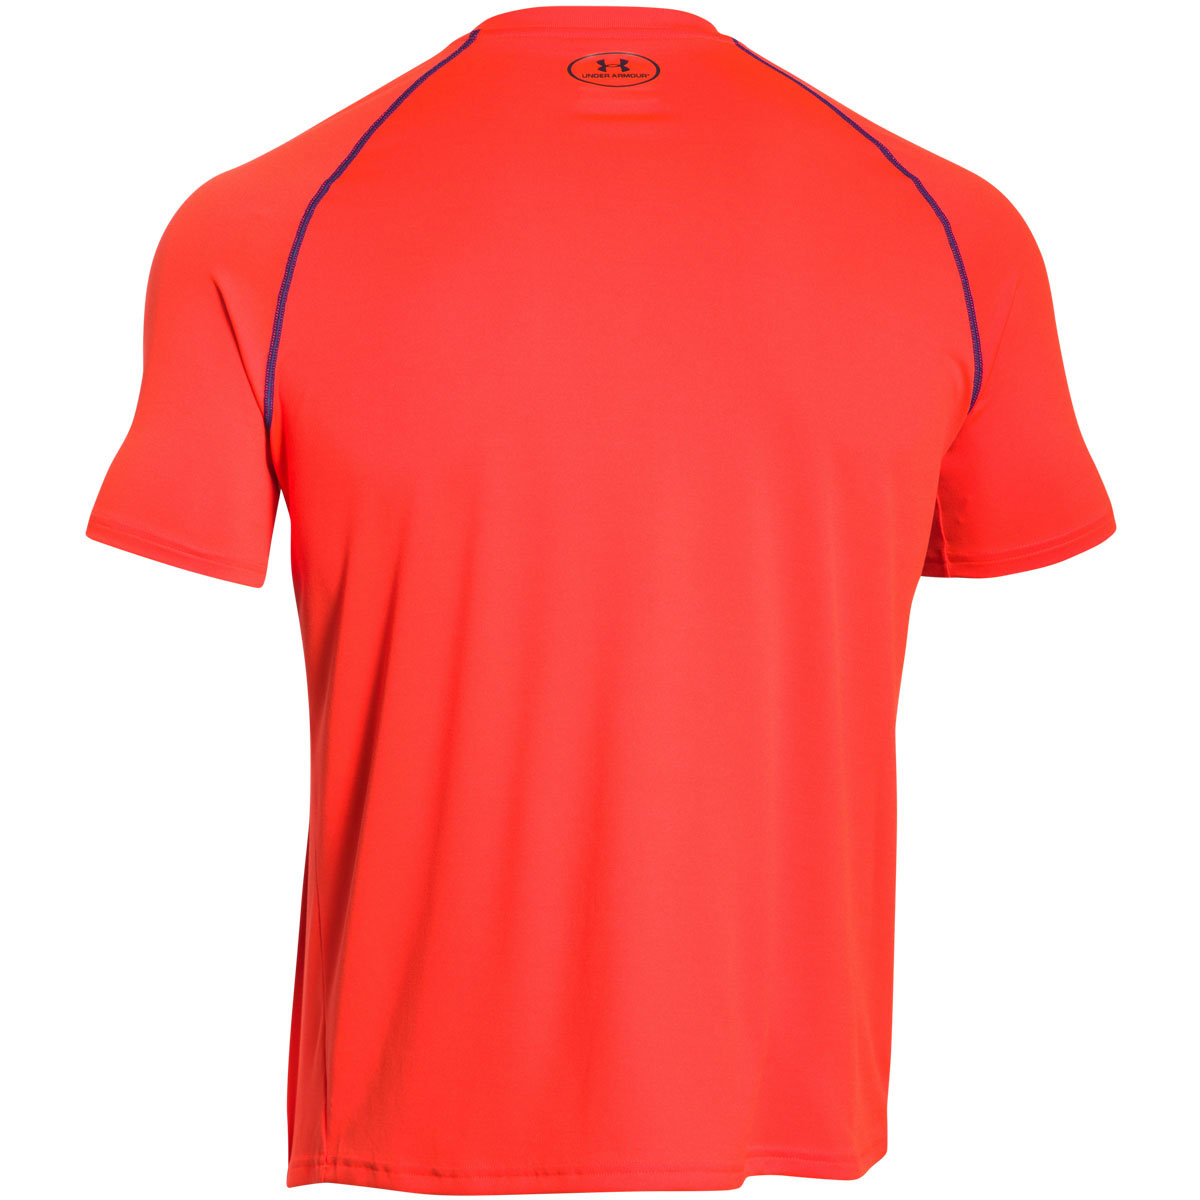 Under-Armour-Mens-UA-Tech-SS-T-Shirt-HeatGear-Training-31-OFF-RRP thumbnail 30